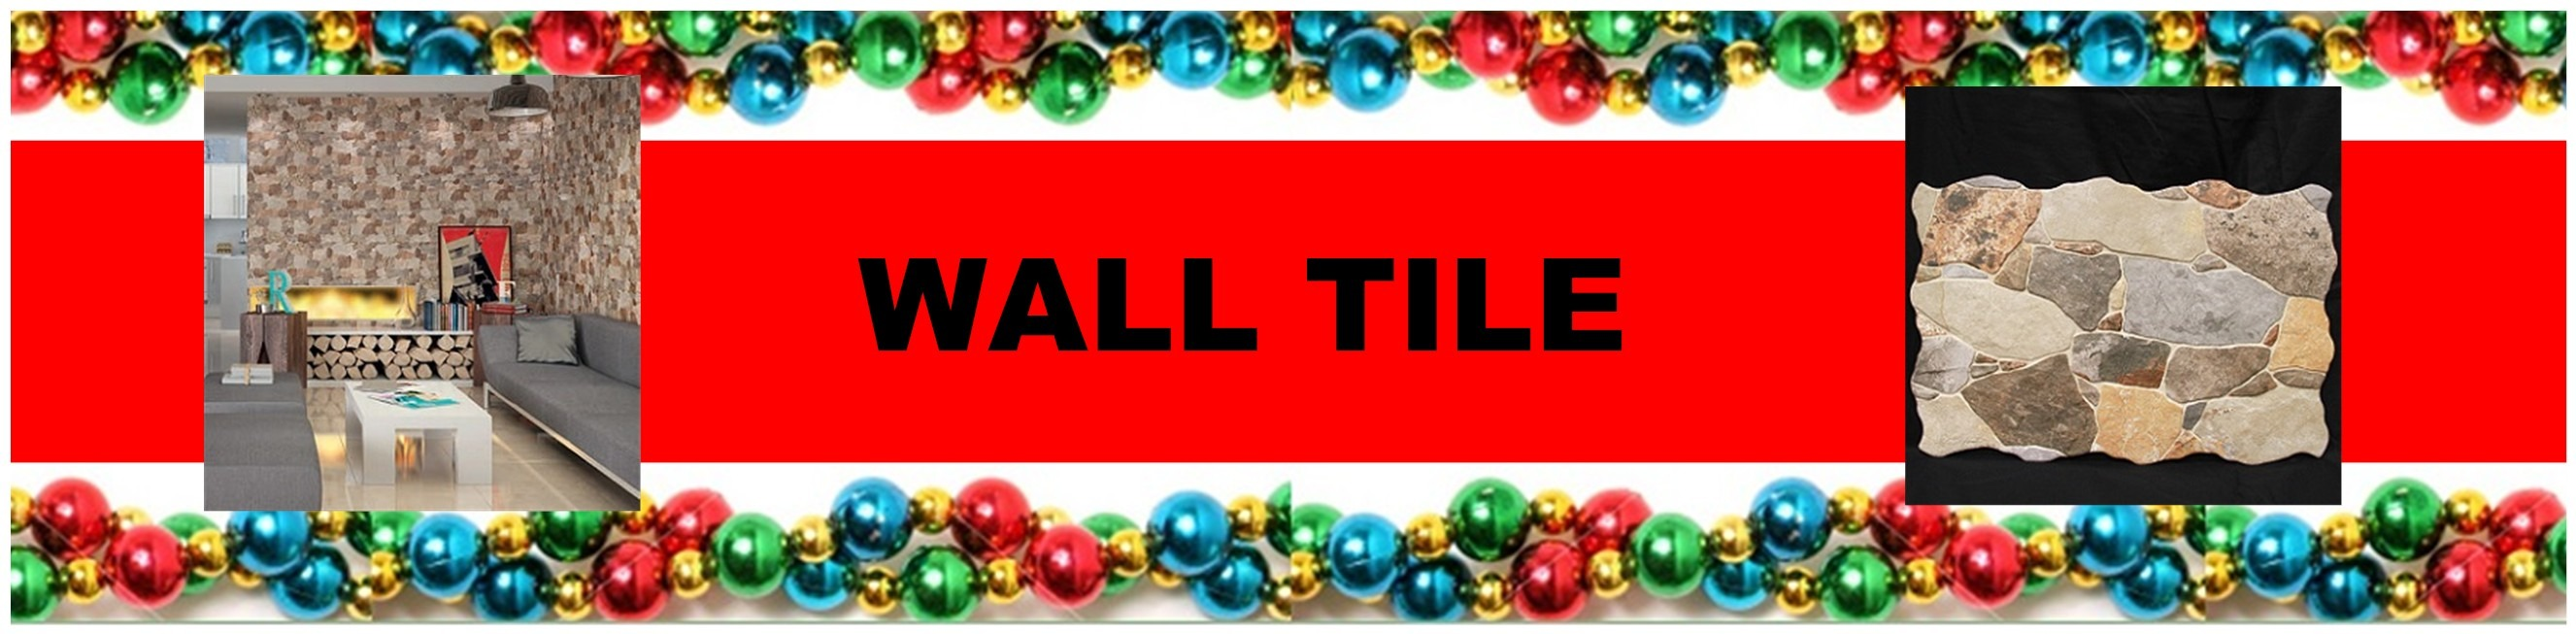 CHRISTMAS WALL TILE HEADER